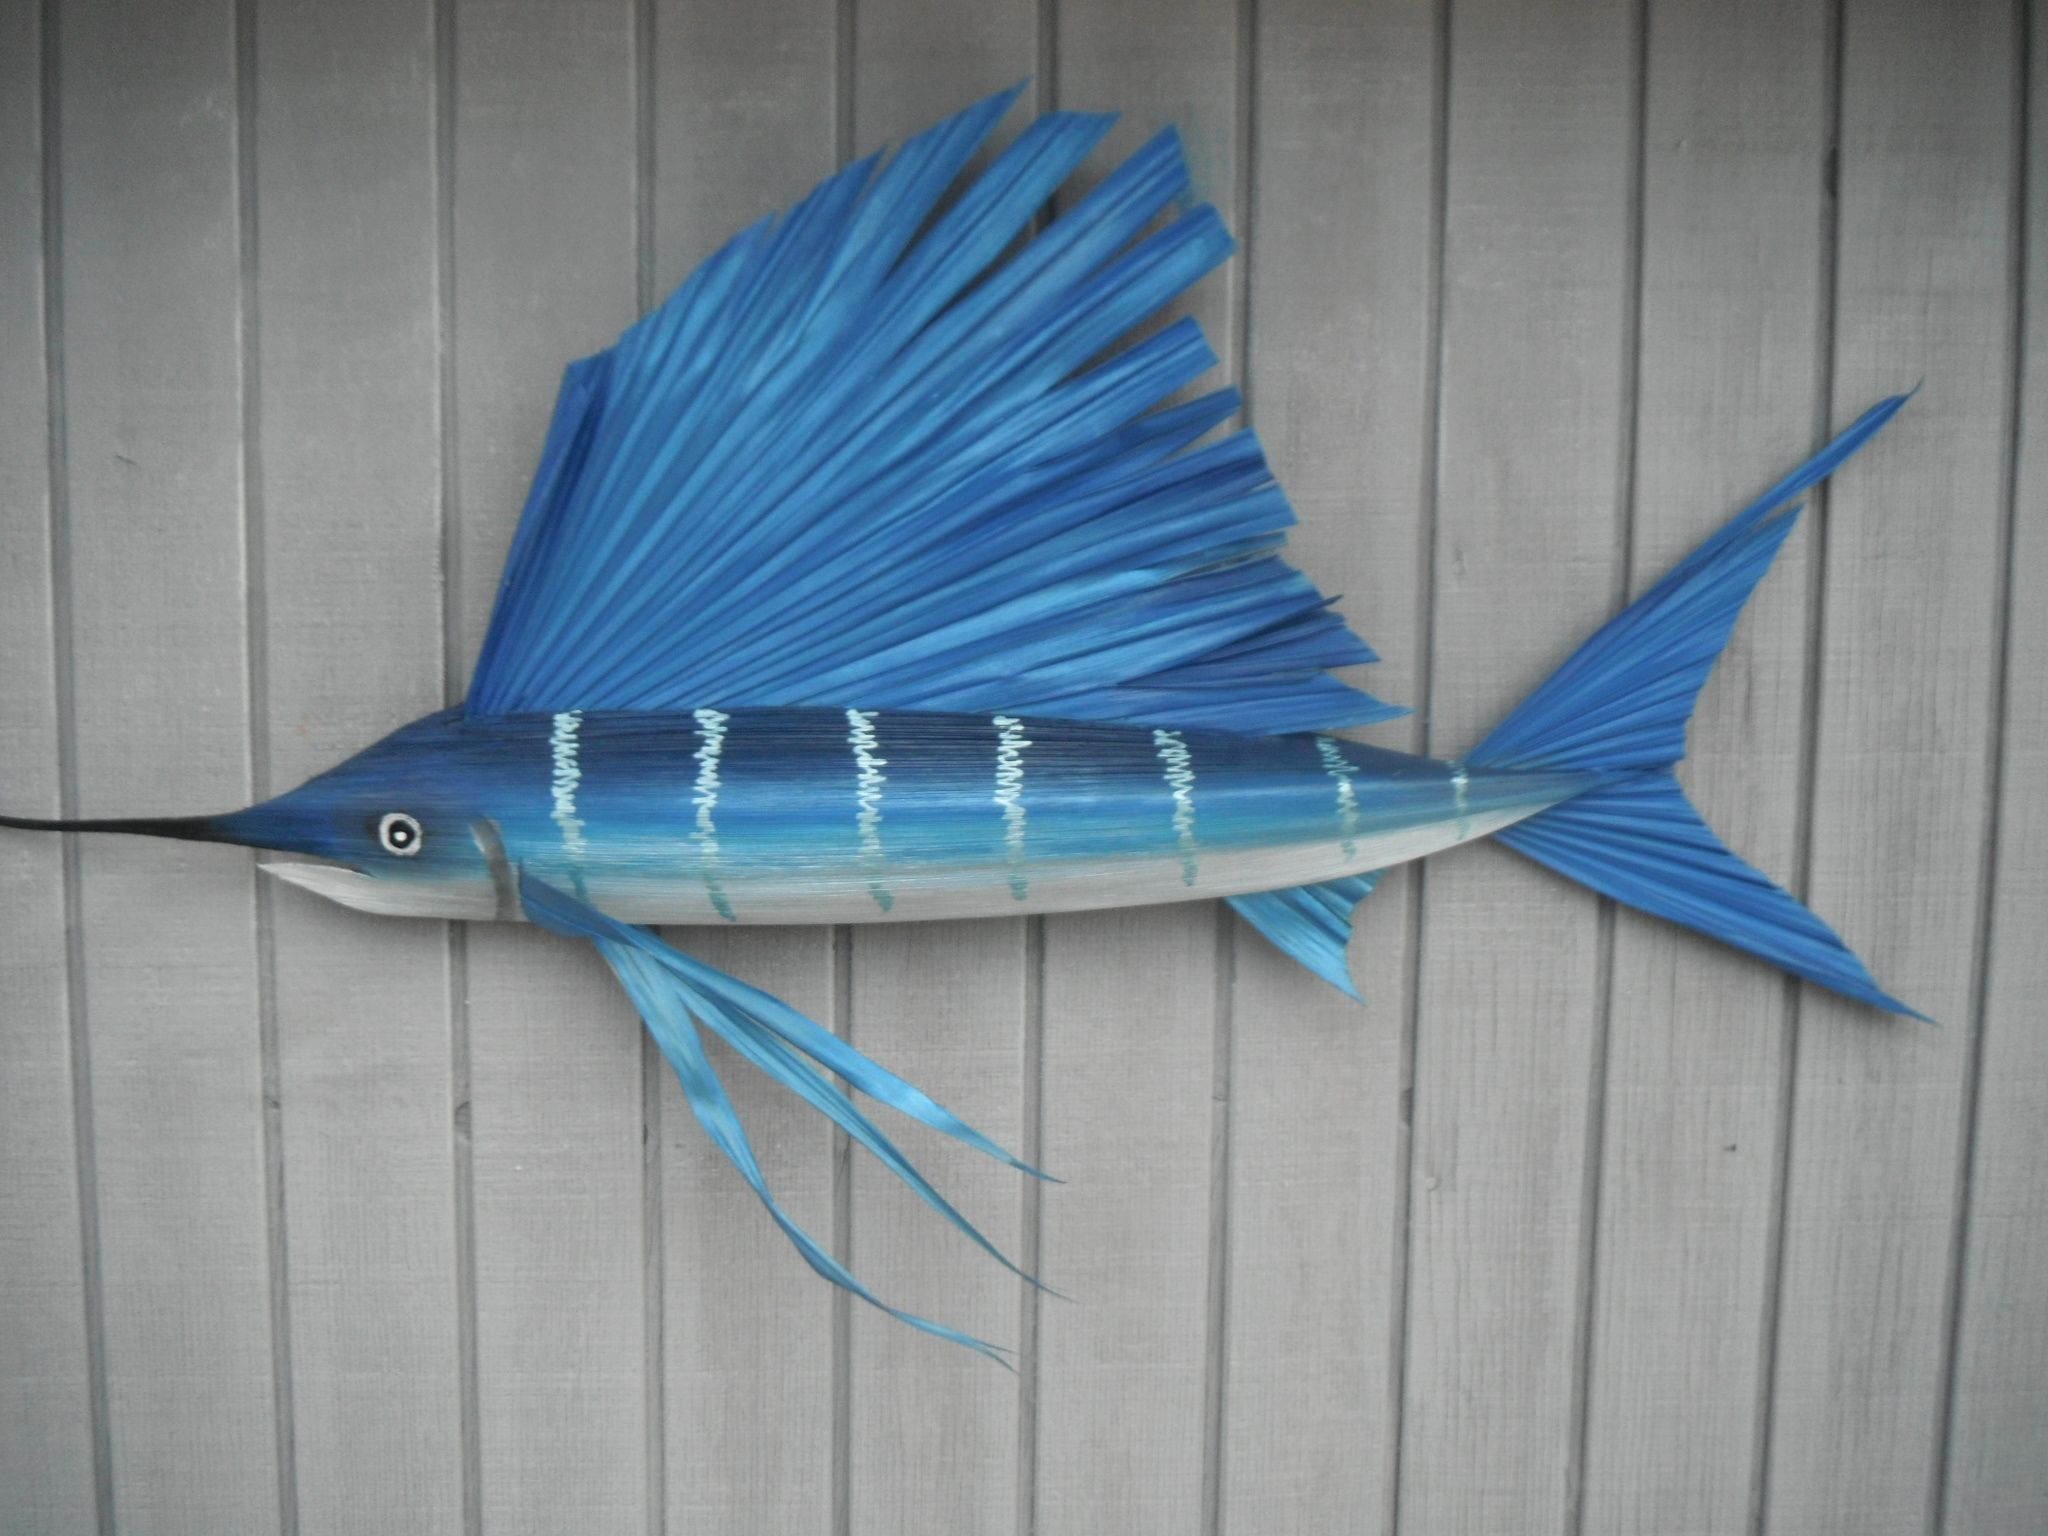 sailfish made entirely from materials I gather from Florida Keys